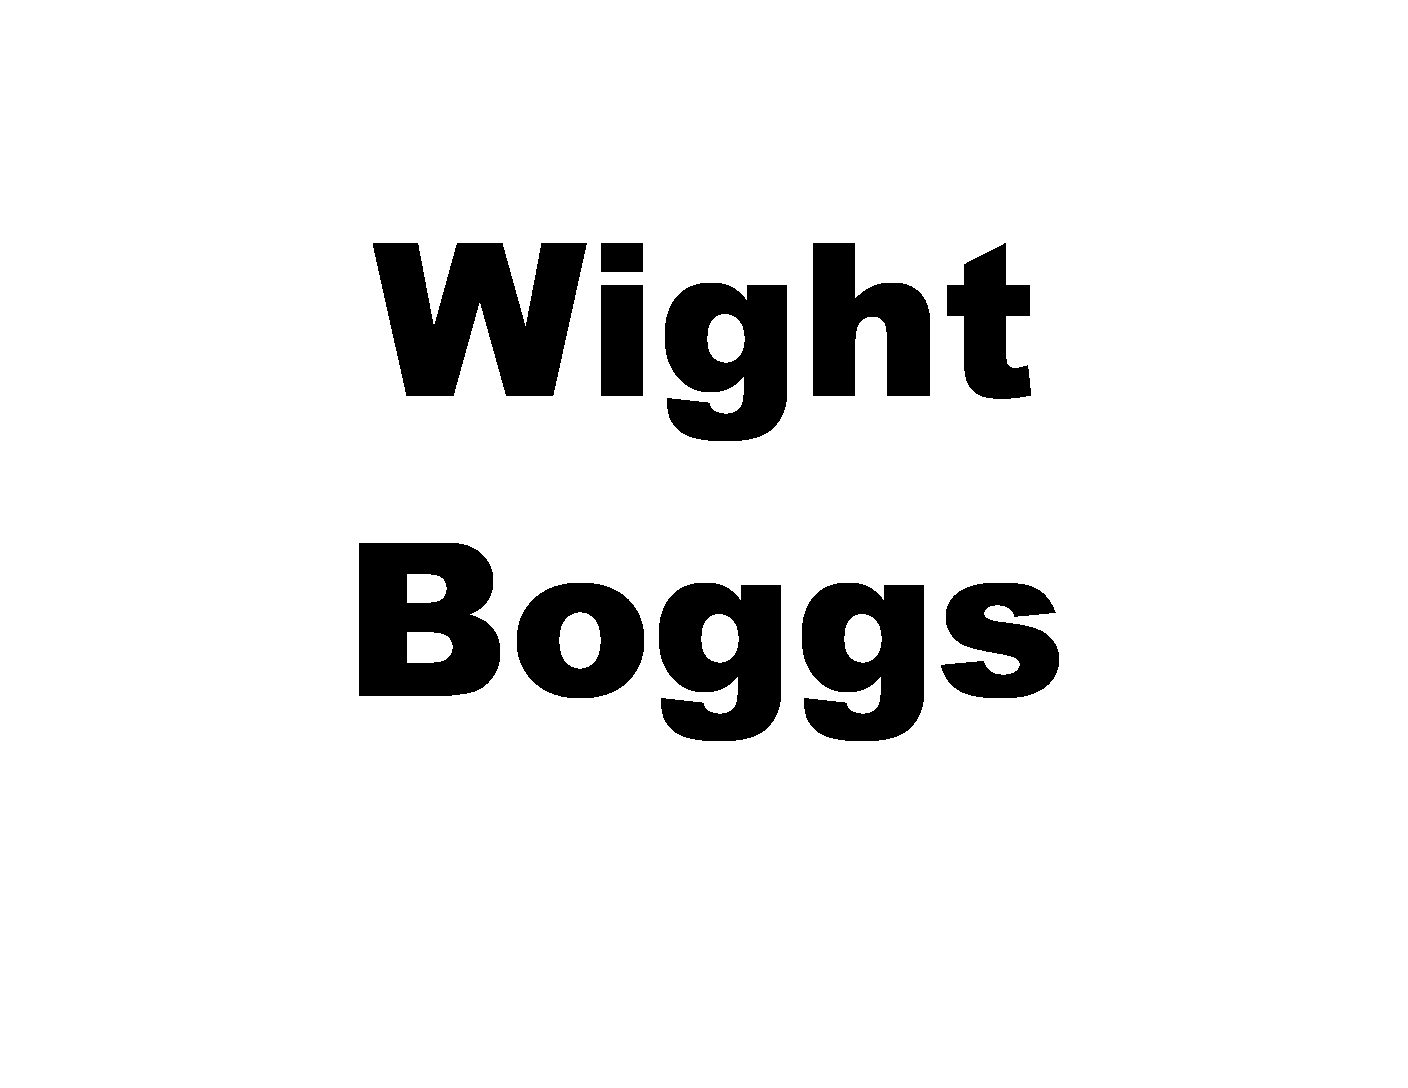 Wight Boggs